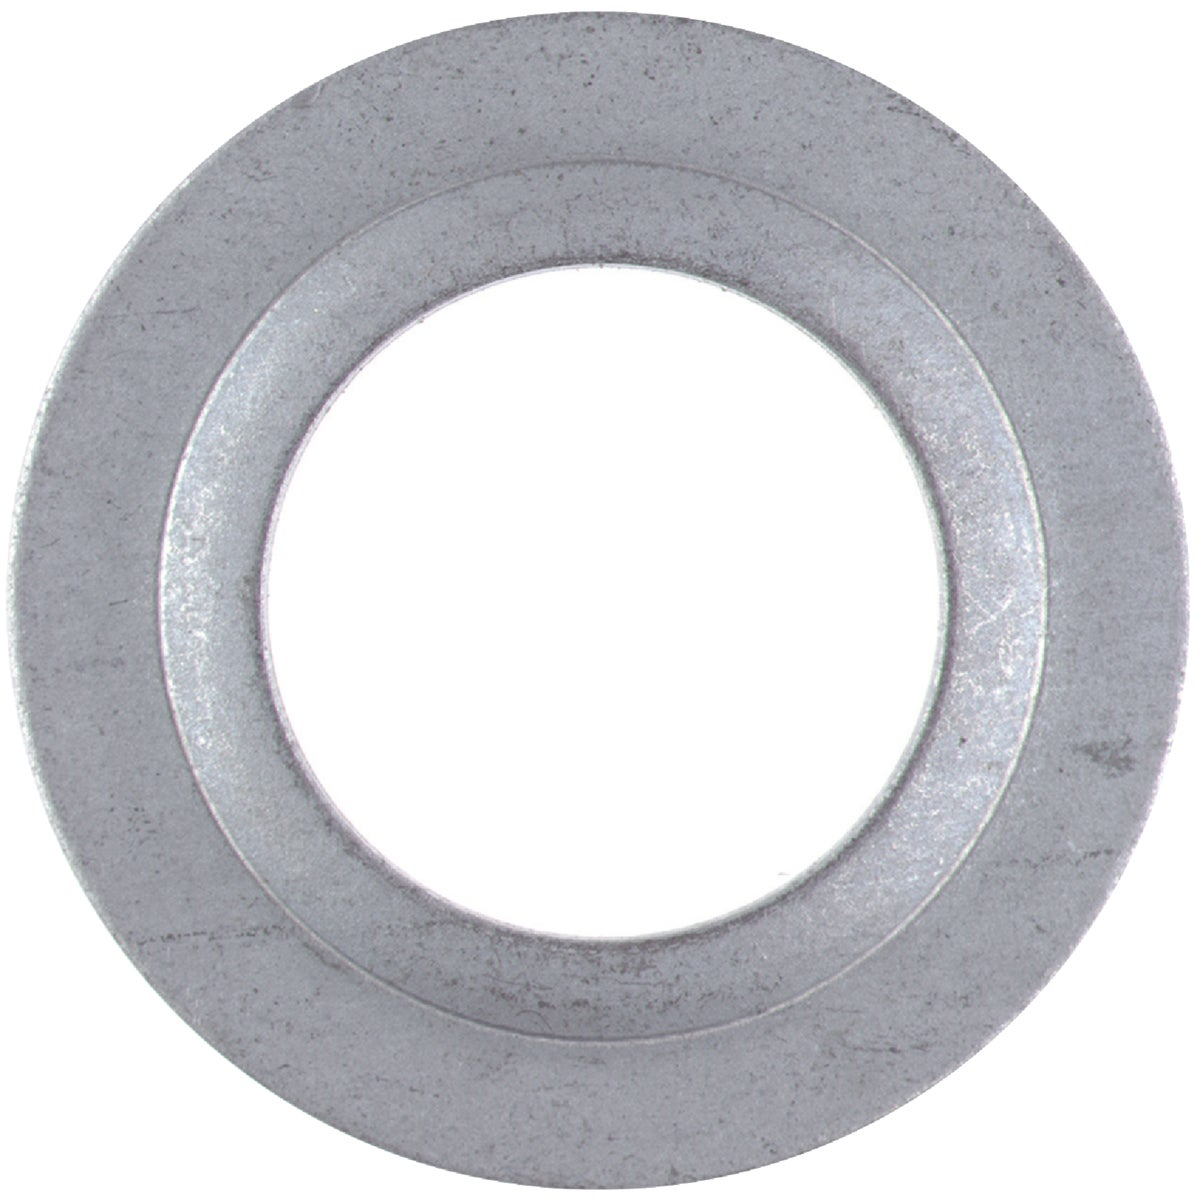 2X1-1/2 REDUCE WASHER - WA1652 by Thomas & Betts